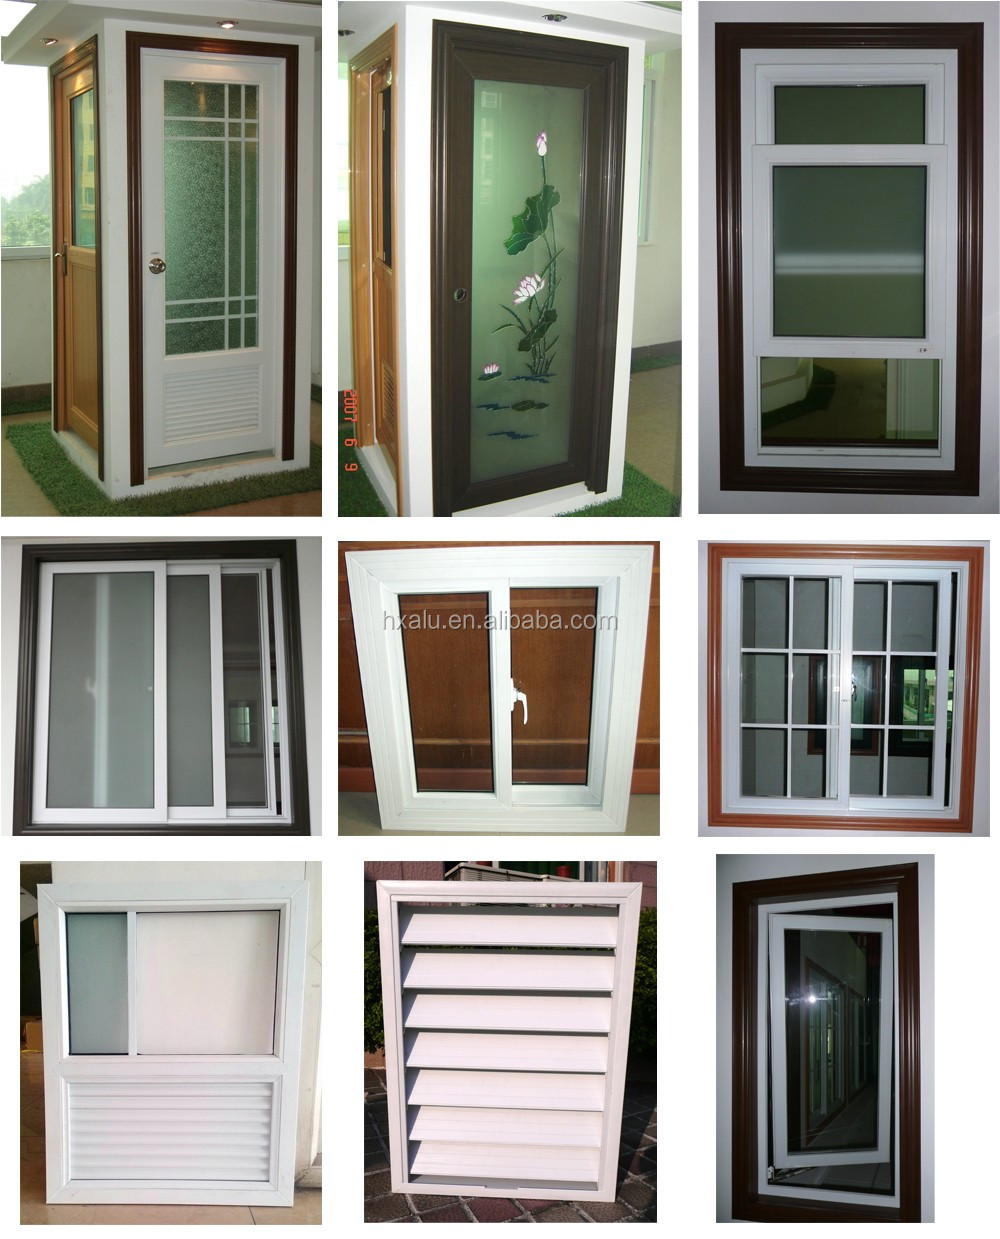 Pvc Windows And Doors : Wholesale white color upvc profile for pvc window and door